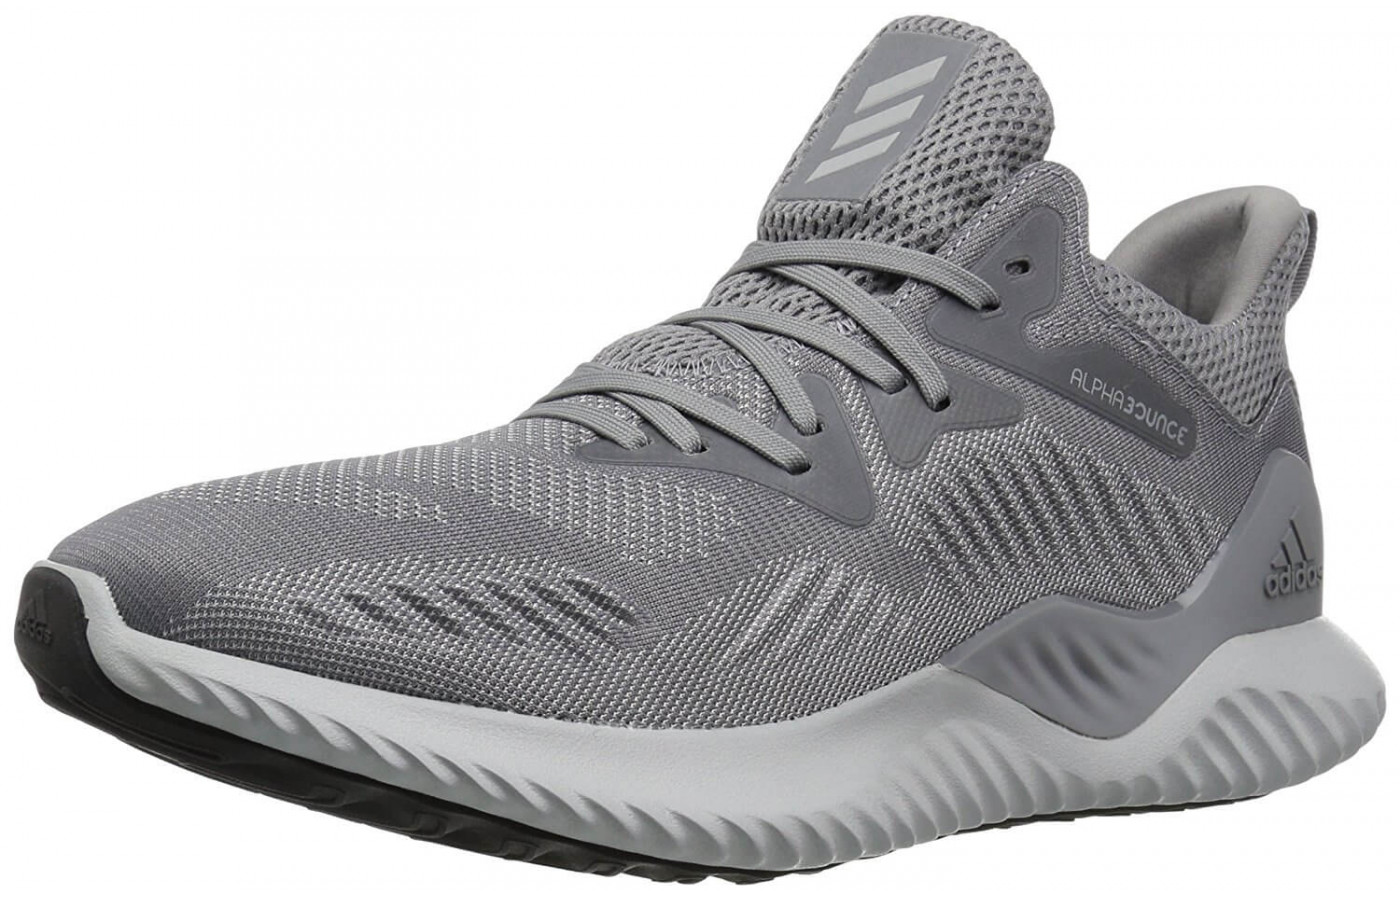 91e6c6689a1d4 Adidas Alphabounce Beyond - To Buy or Not in May 2019